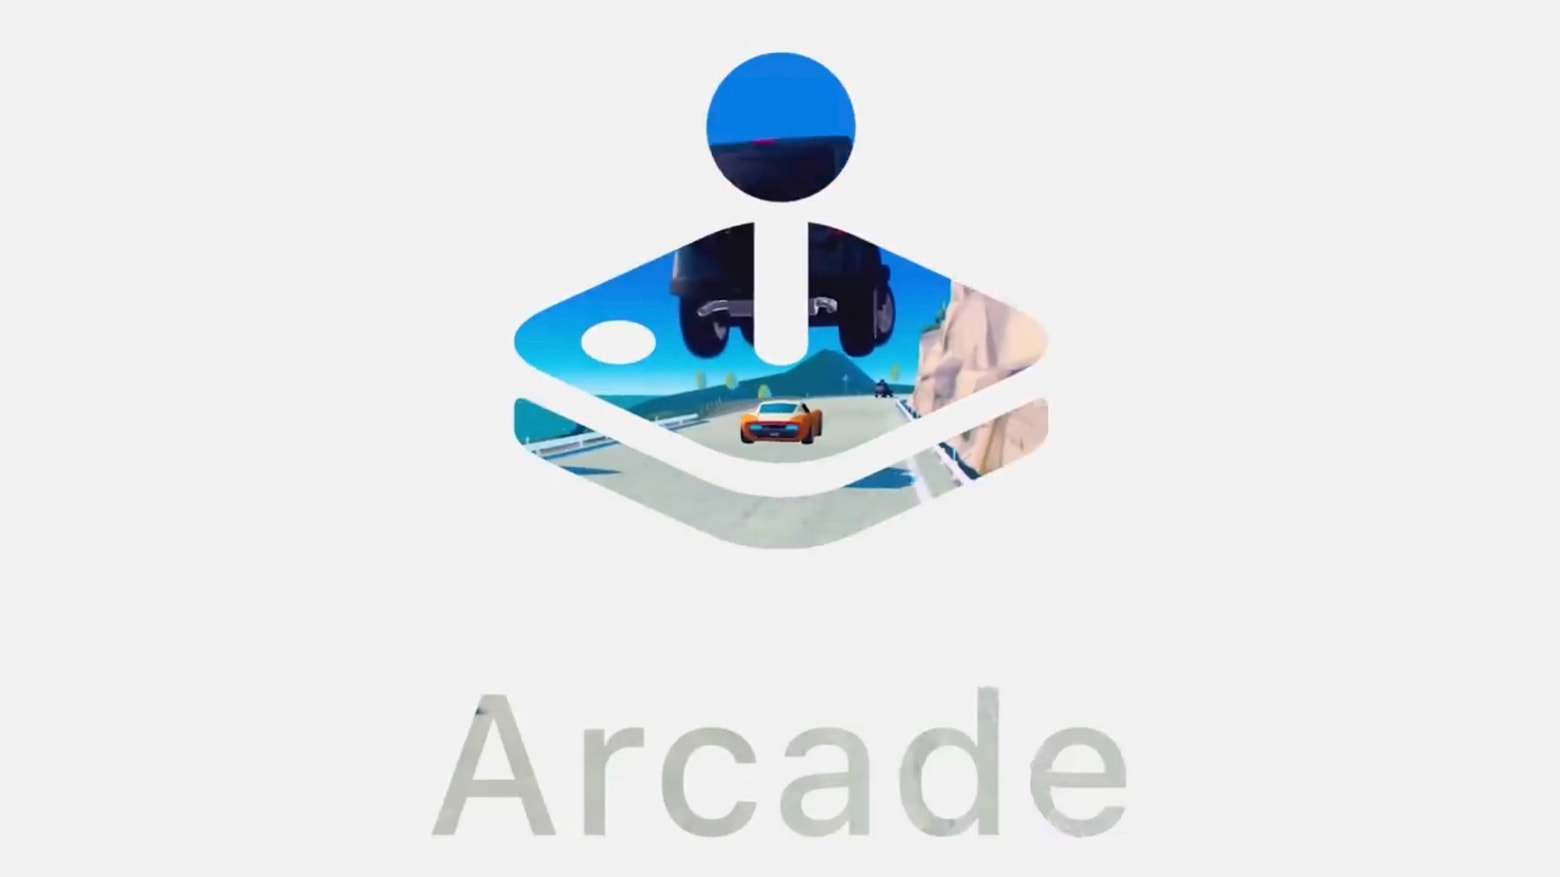 Apple Arcade highlights games for the whole family